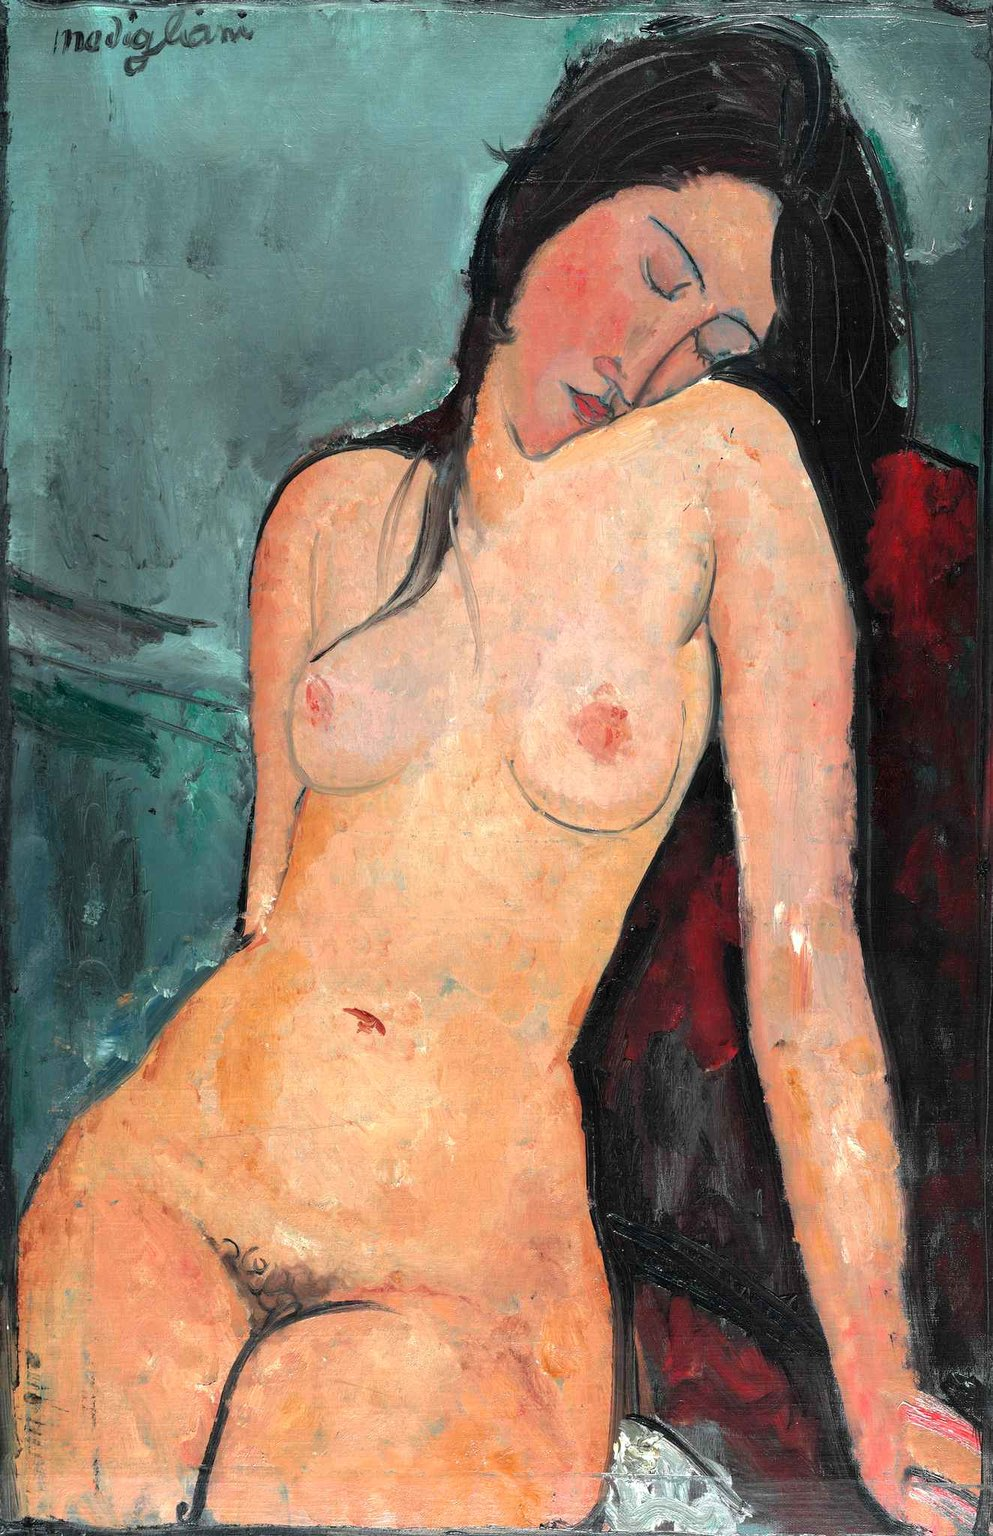 Female-Nude-1916-Amedeo-Modigliani.jpg